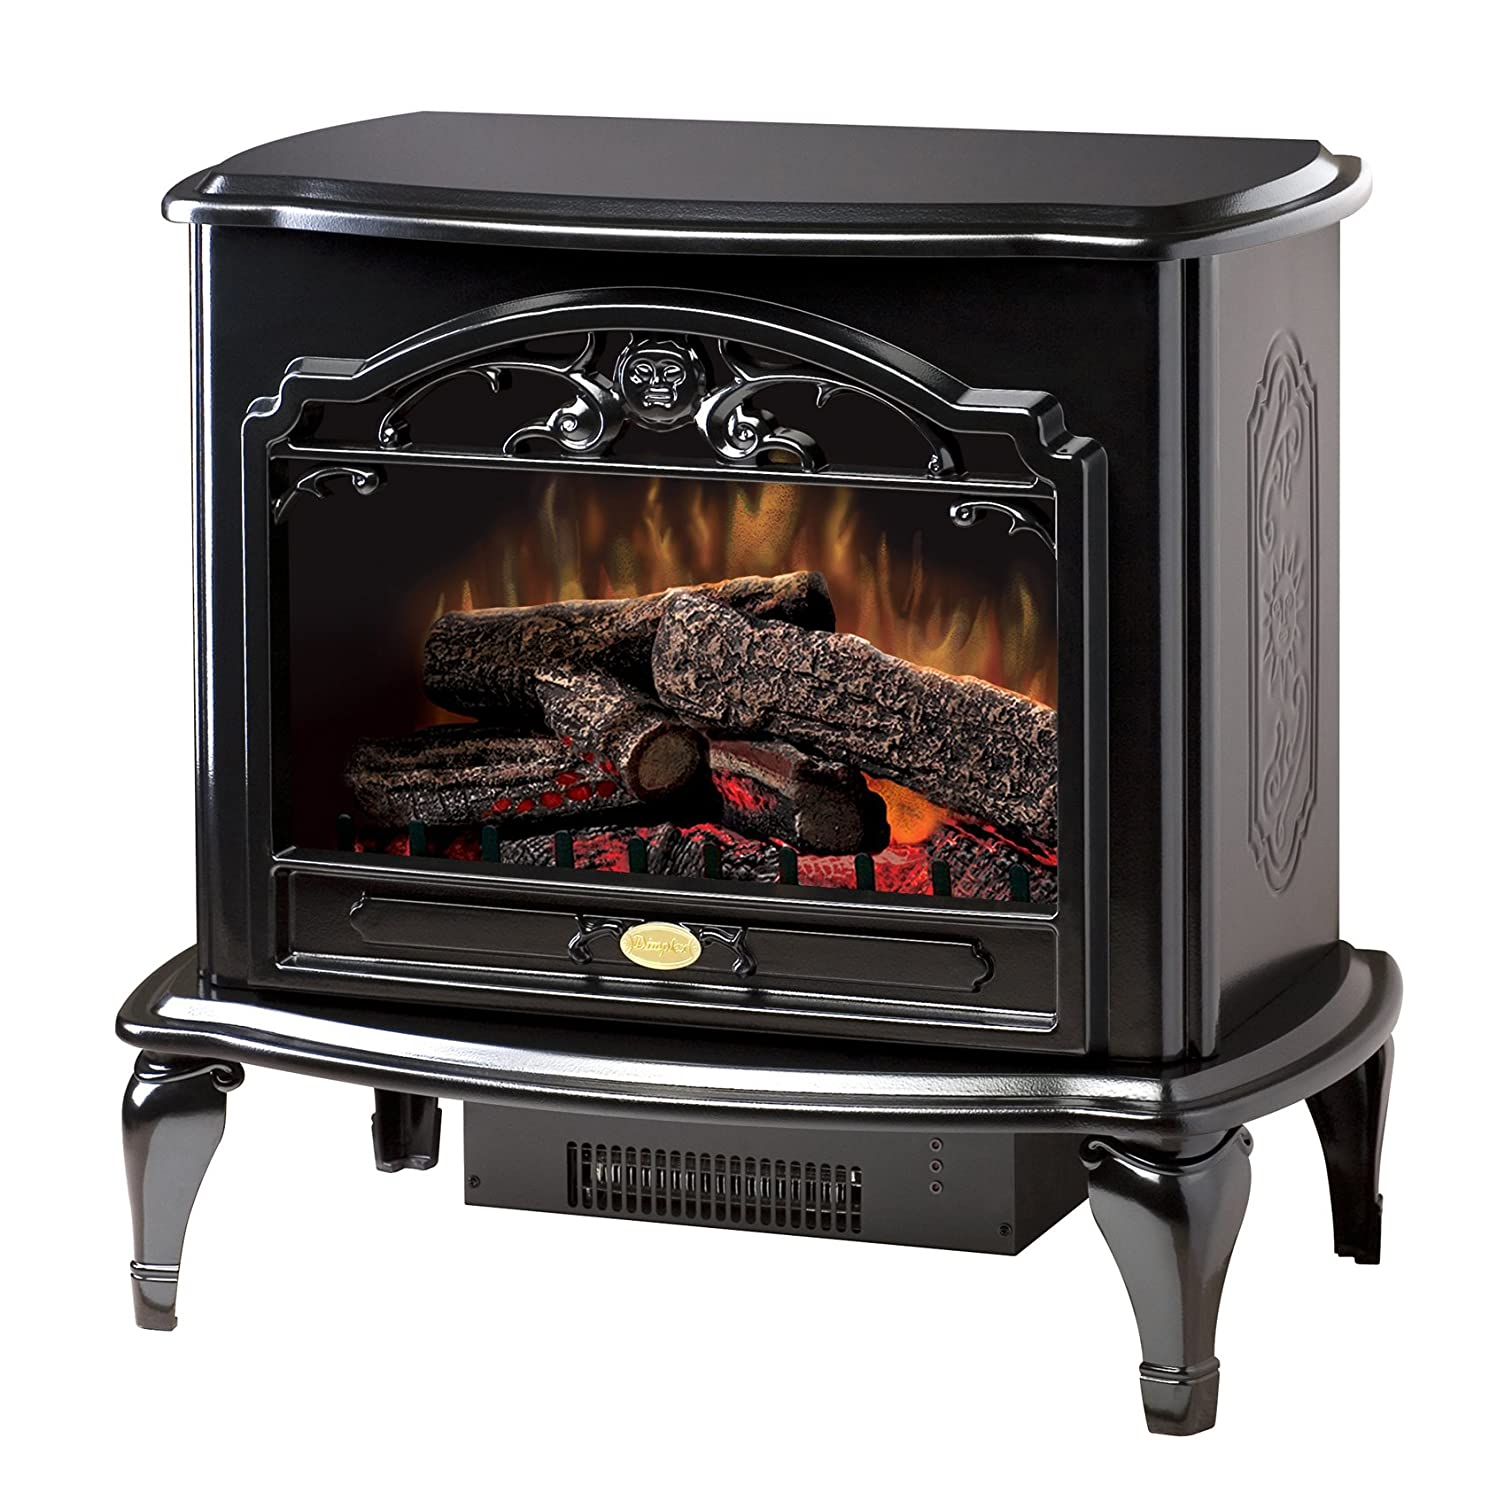 Dimplex Tds8515tb Celeste Electric Stove Glossy Black Garage Heaters With Thermostat 1 Home Kitchen